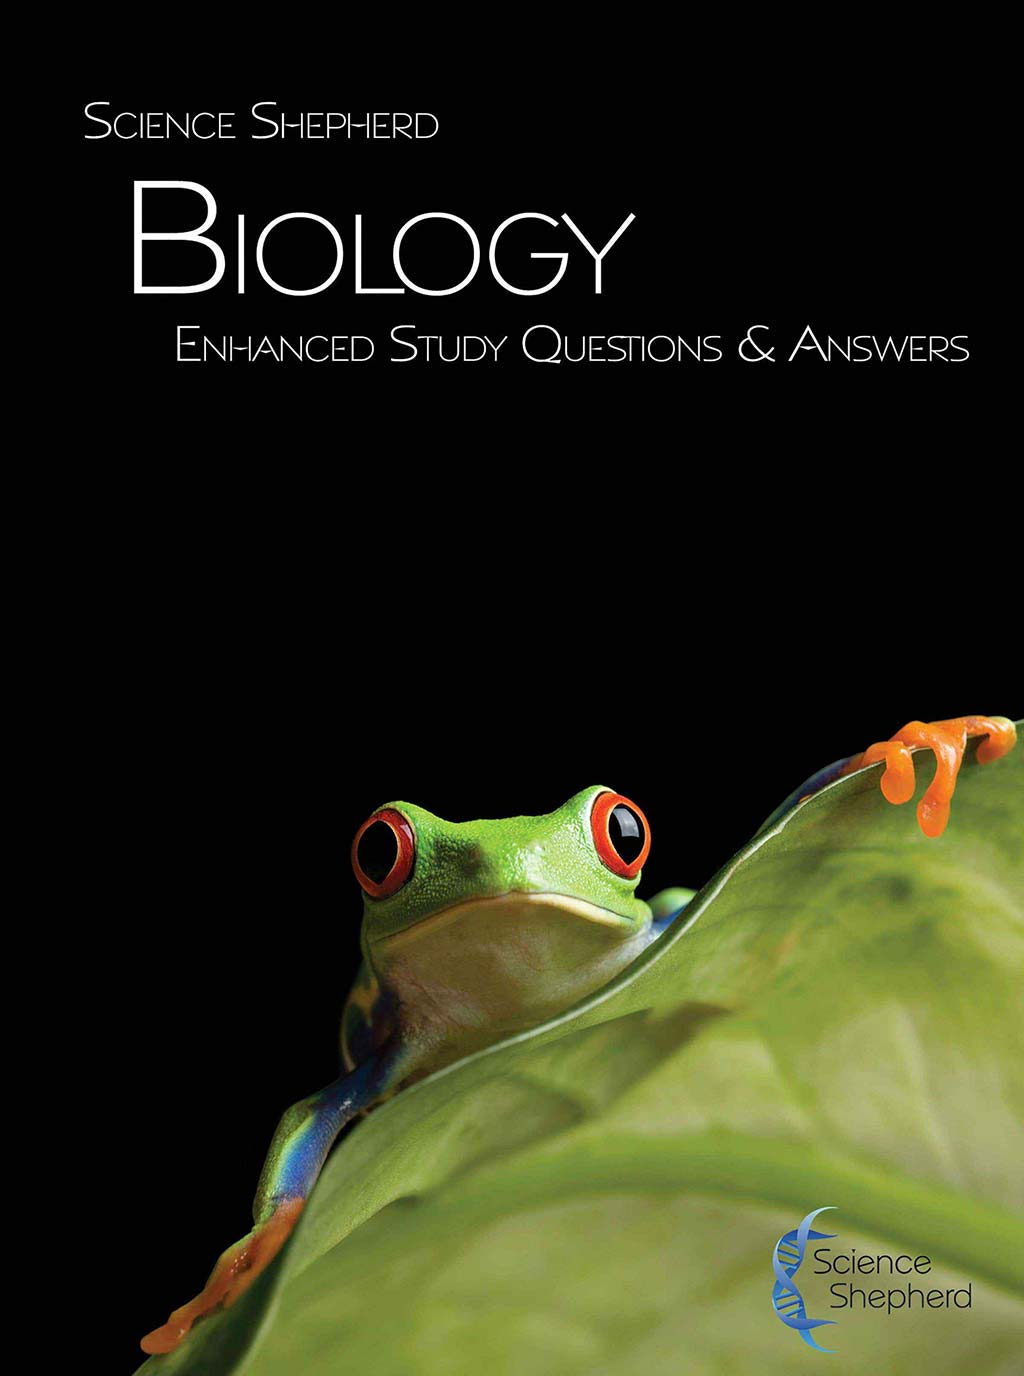 Science Shepherd Homeschooling Biology Study Question and Answer DVD cover